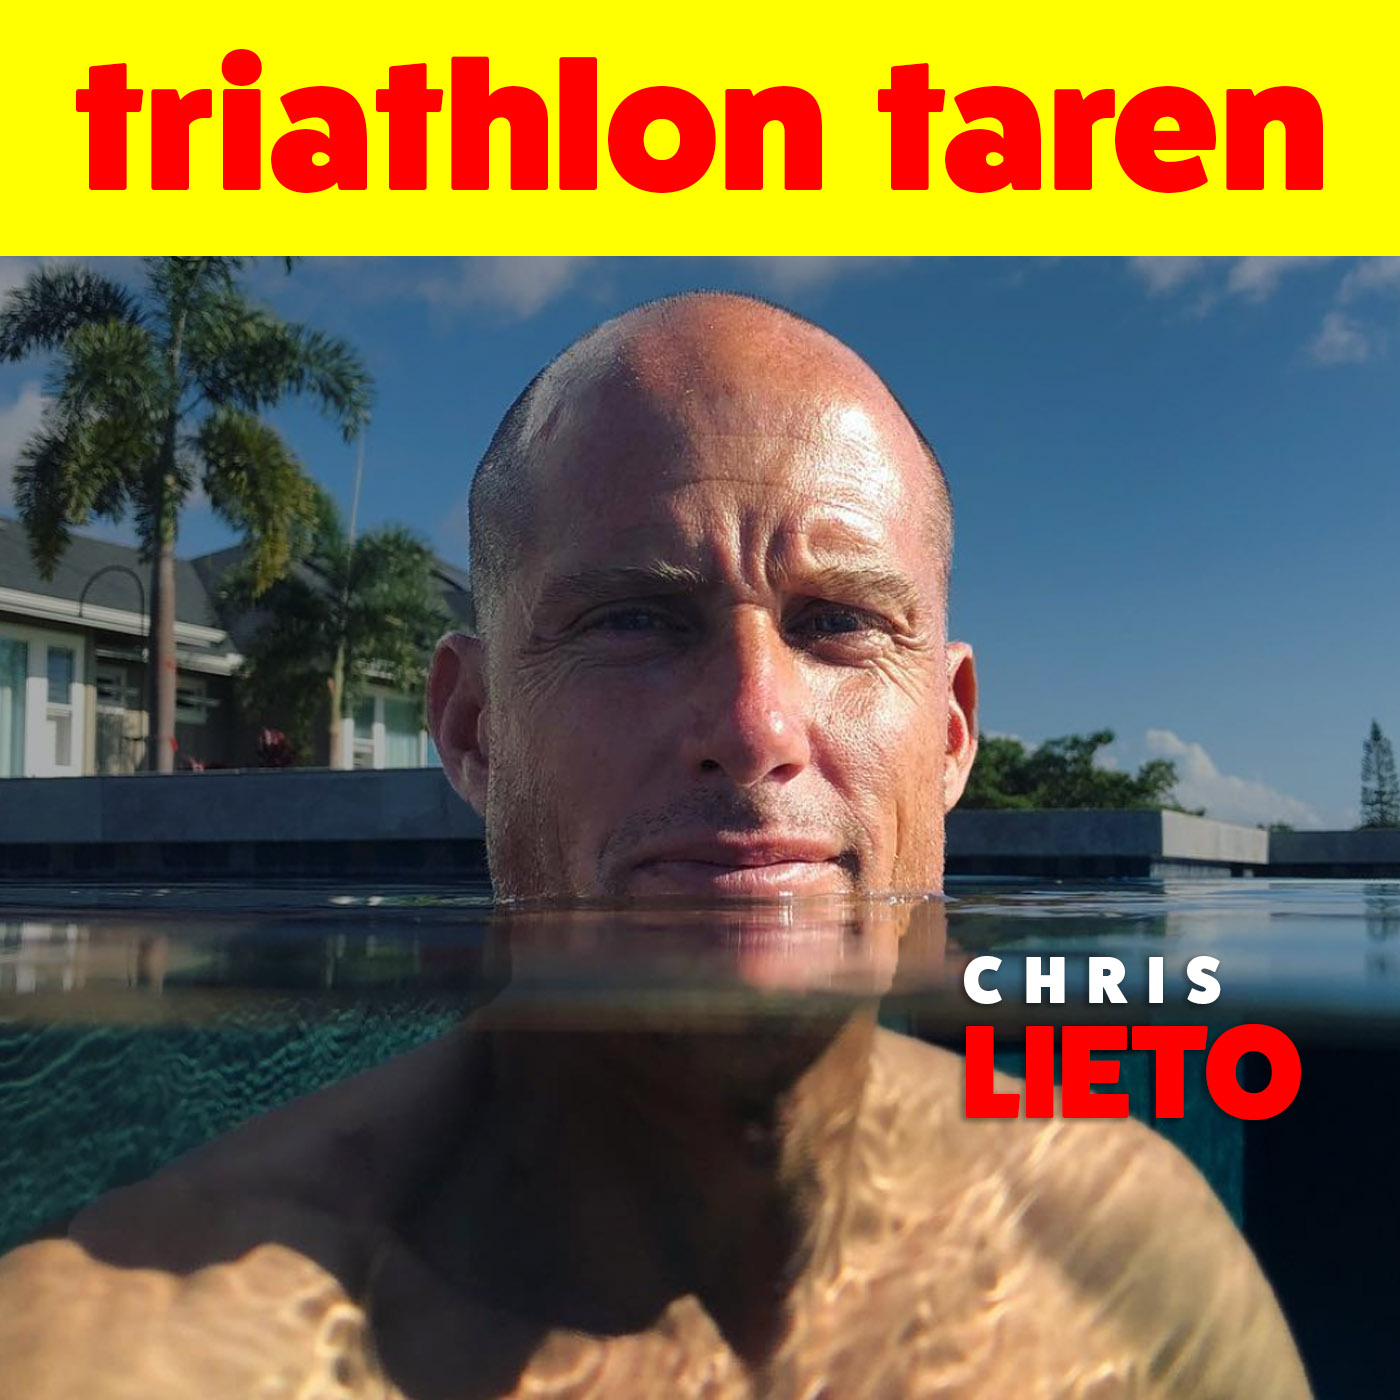 Chris Lieto with one of the most unique perspectives on triathlon